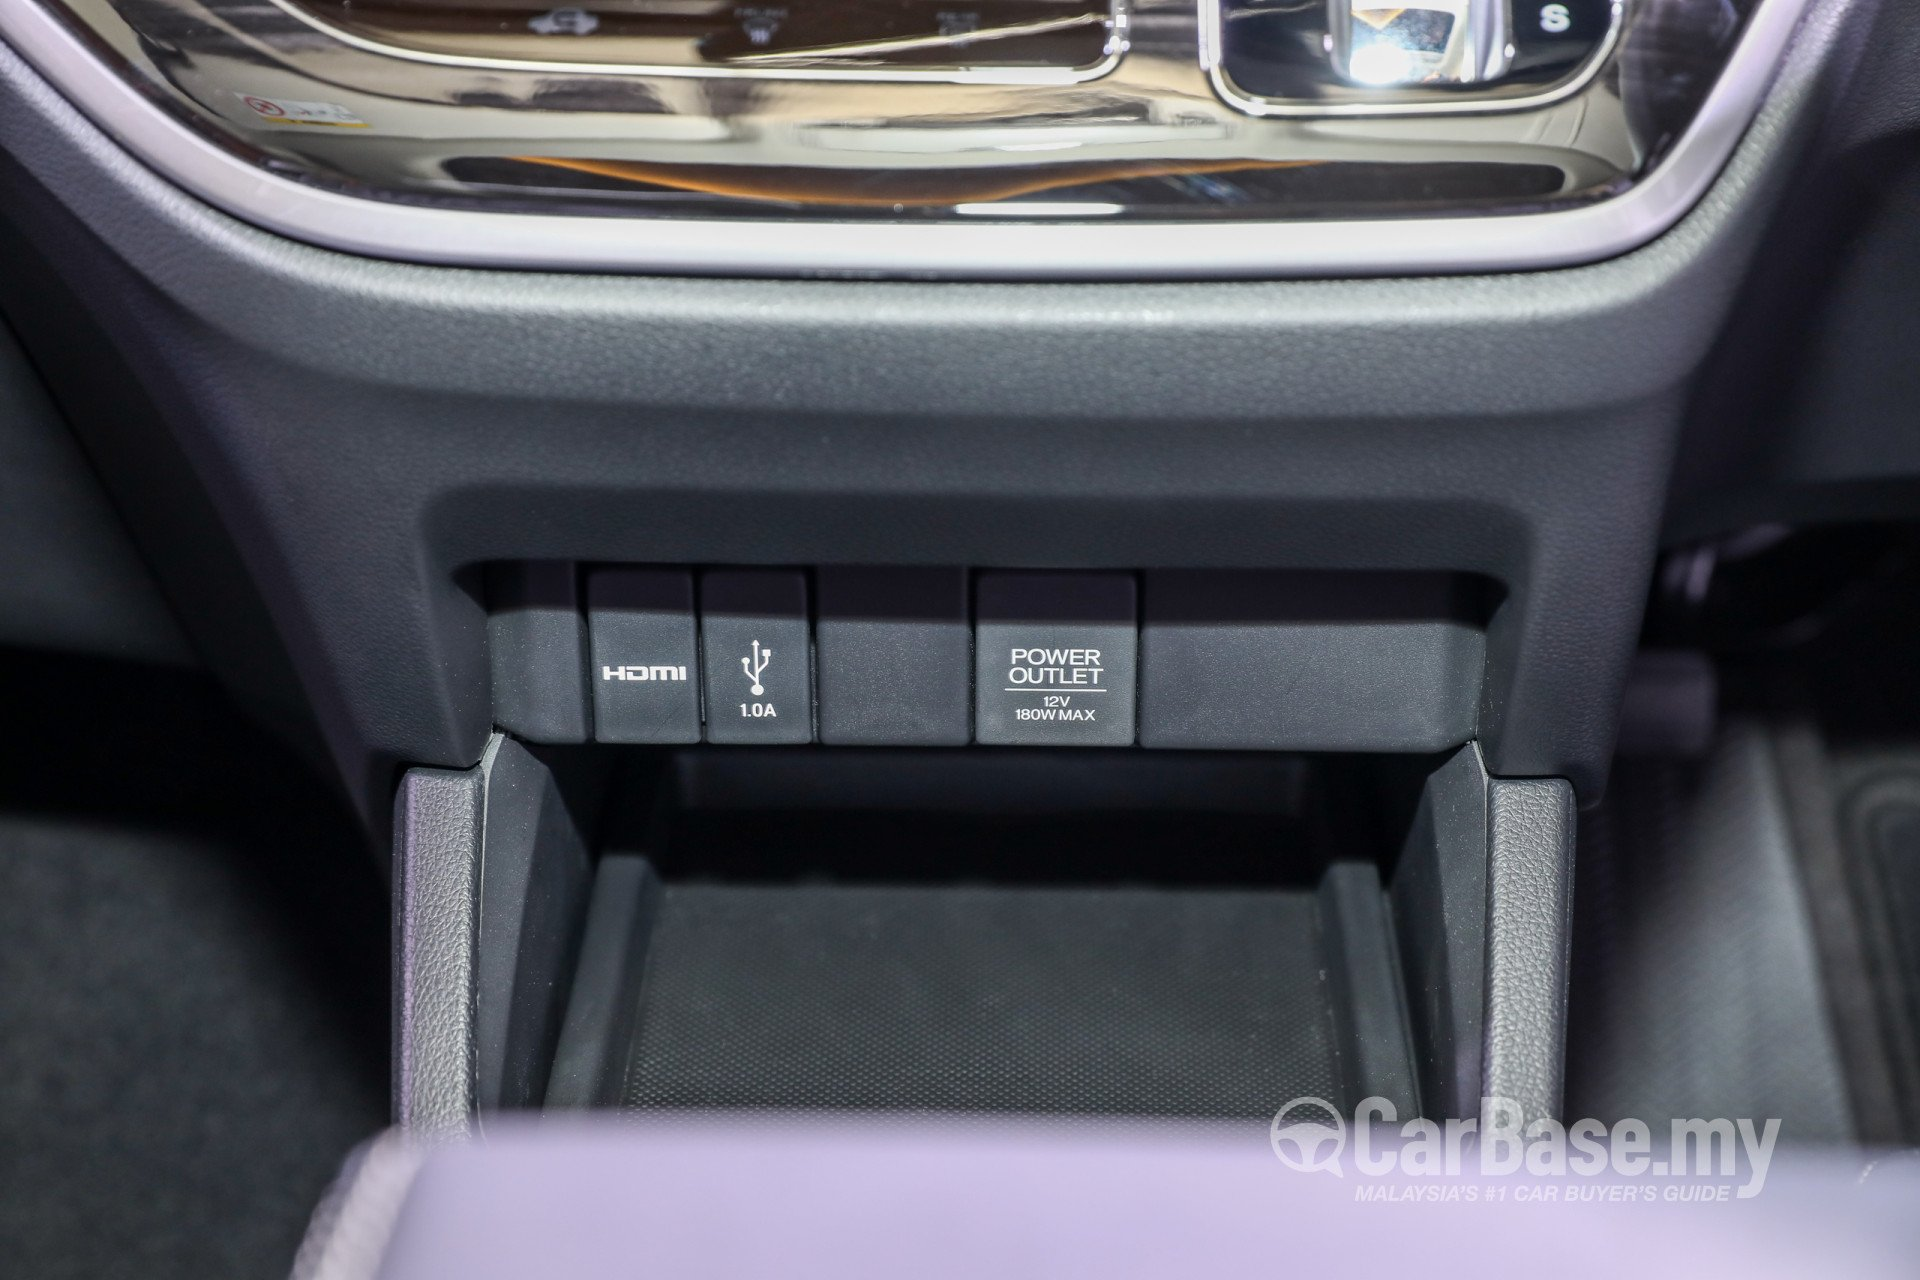 honda odyssey rc1 facelift 2018 interior image 46754 in malaysia rh carbase my